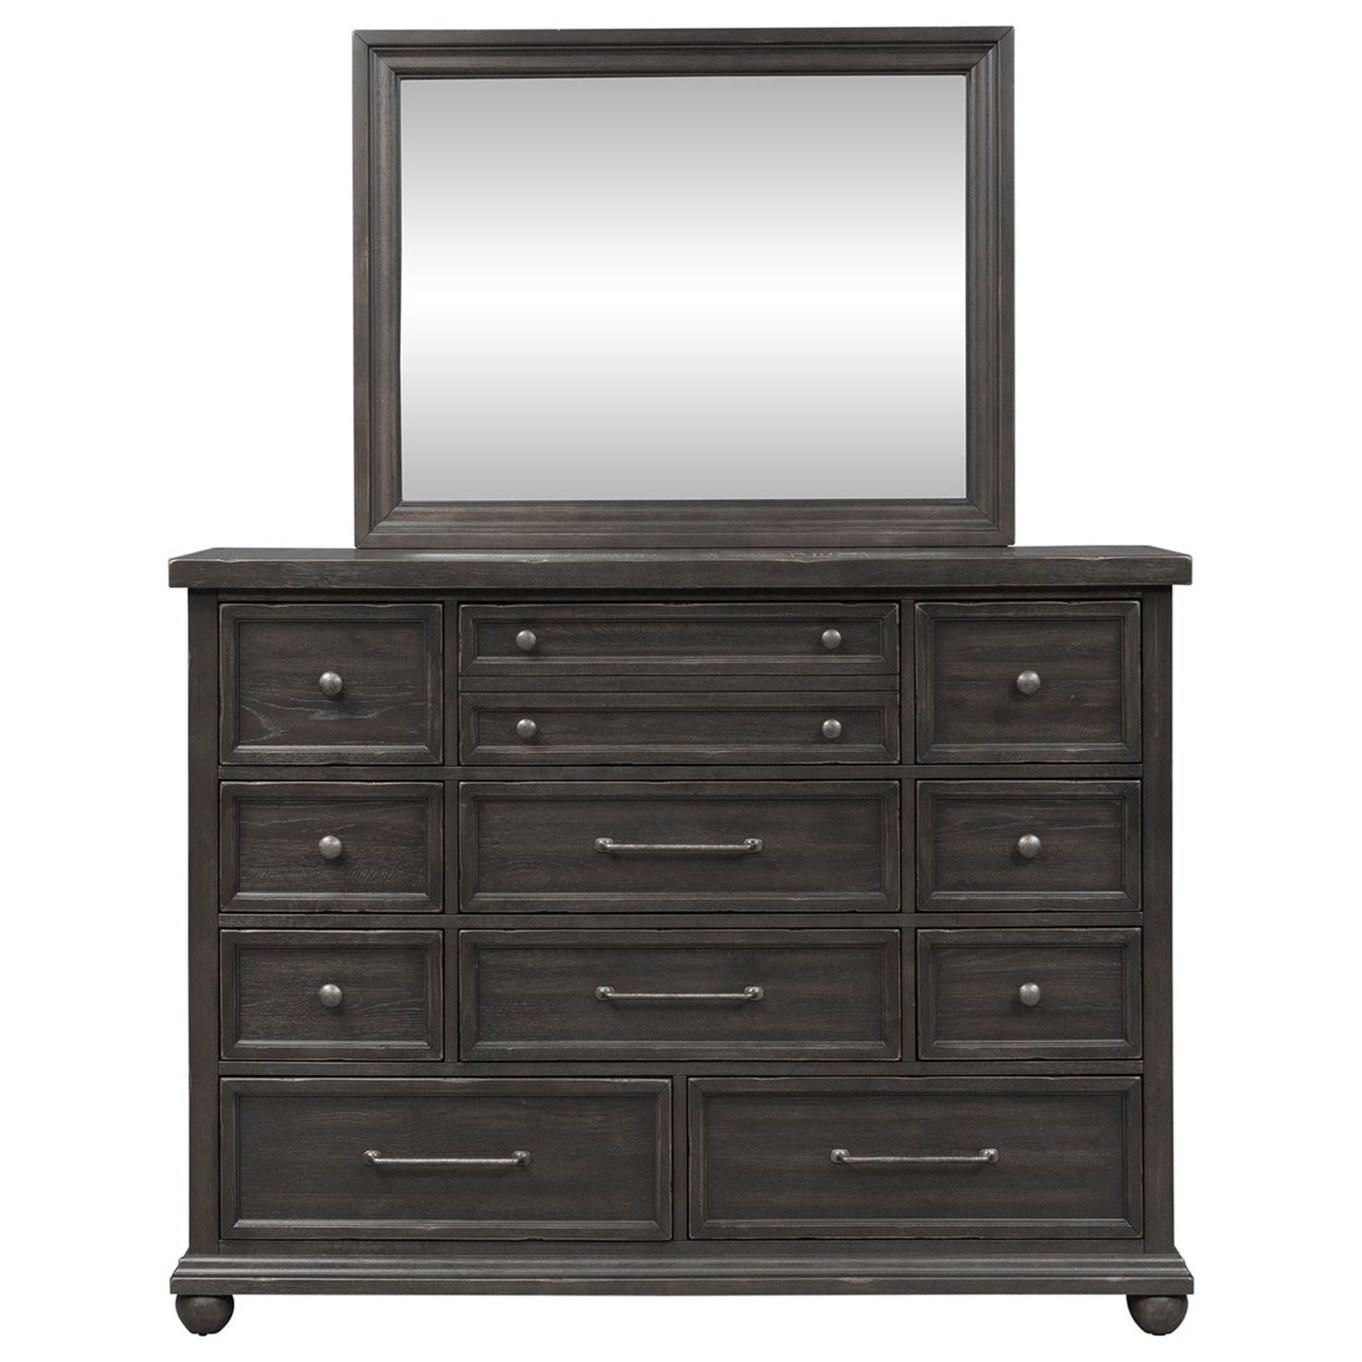 Harvest Home Dresser and Mirror by Liberty Furniture at Northeast Factory Direct